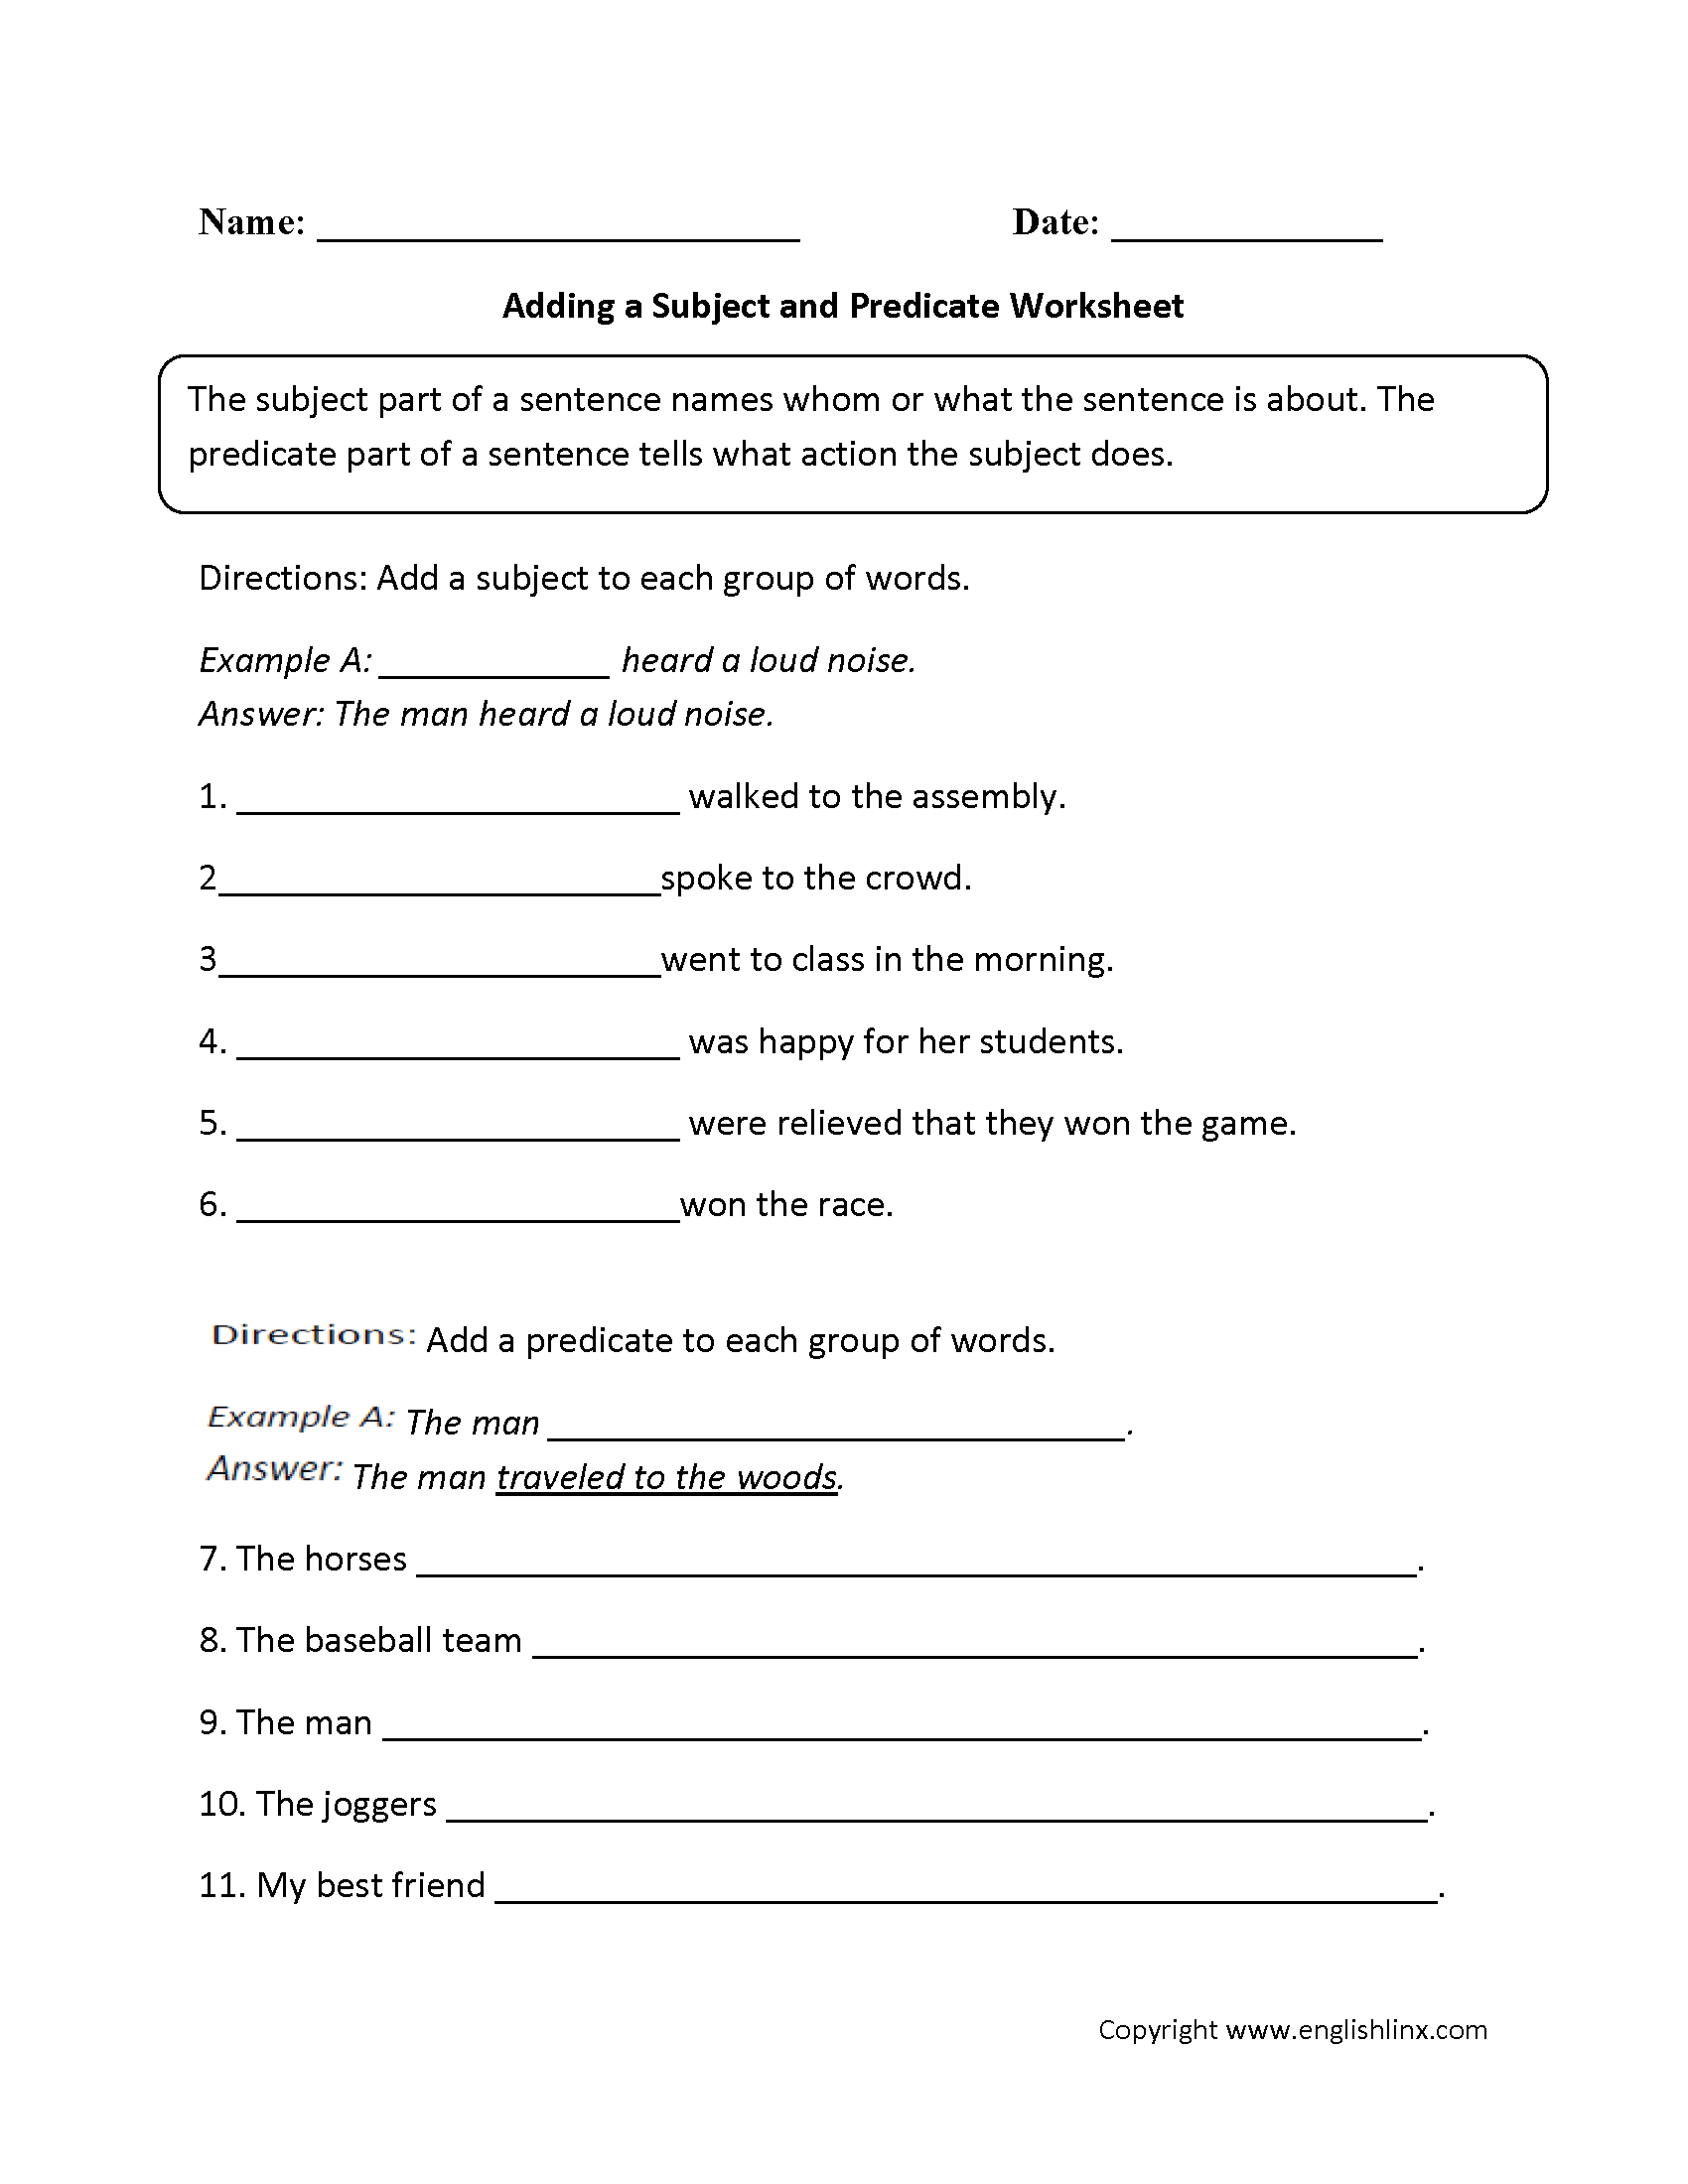 Printables Subject And Predicate Worksheet subject and predicate worksheets adding a worksheet